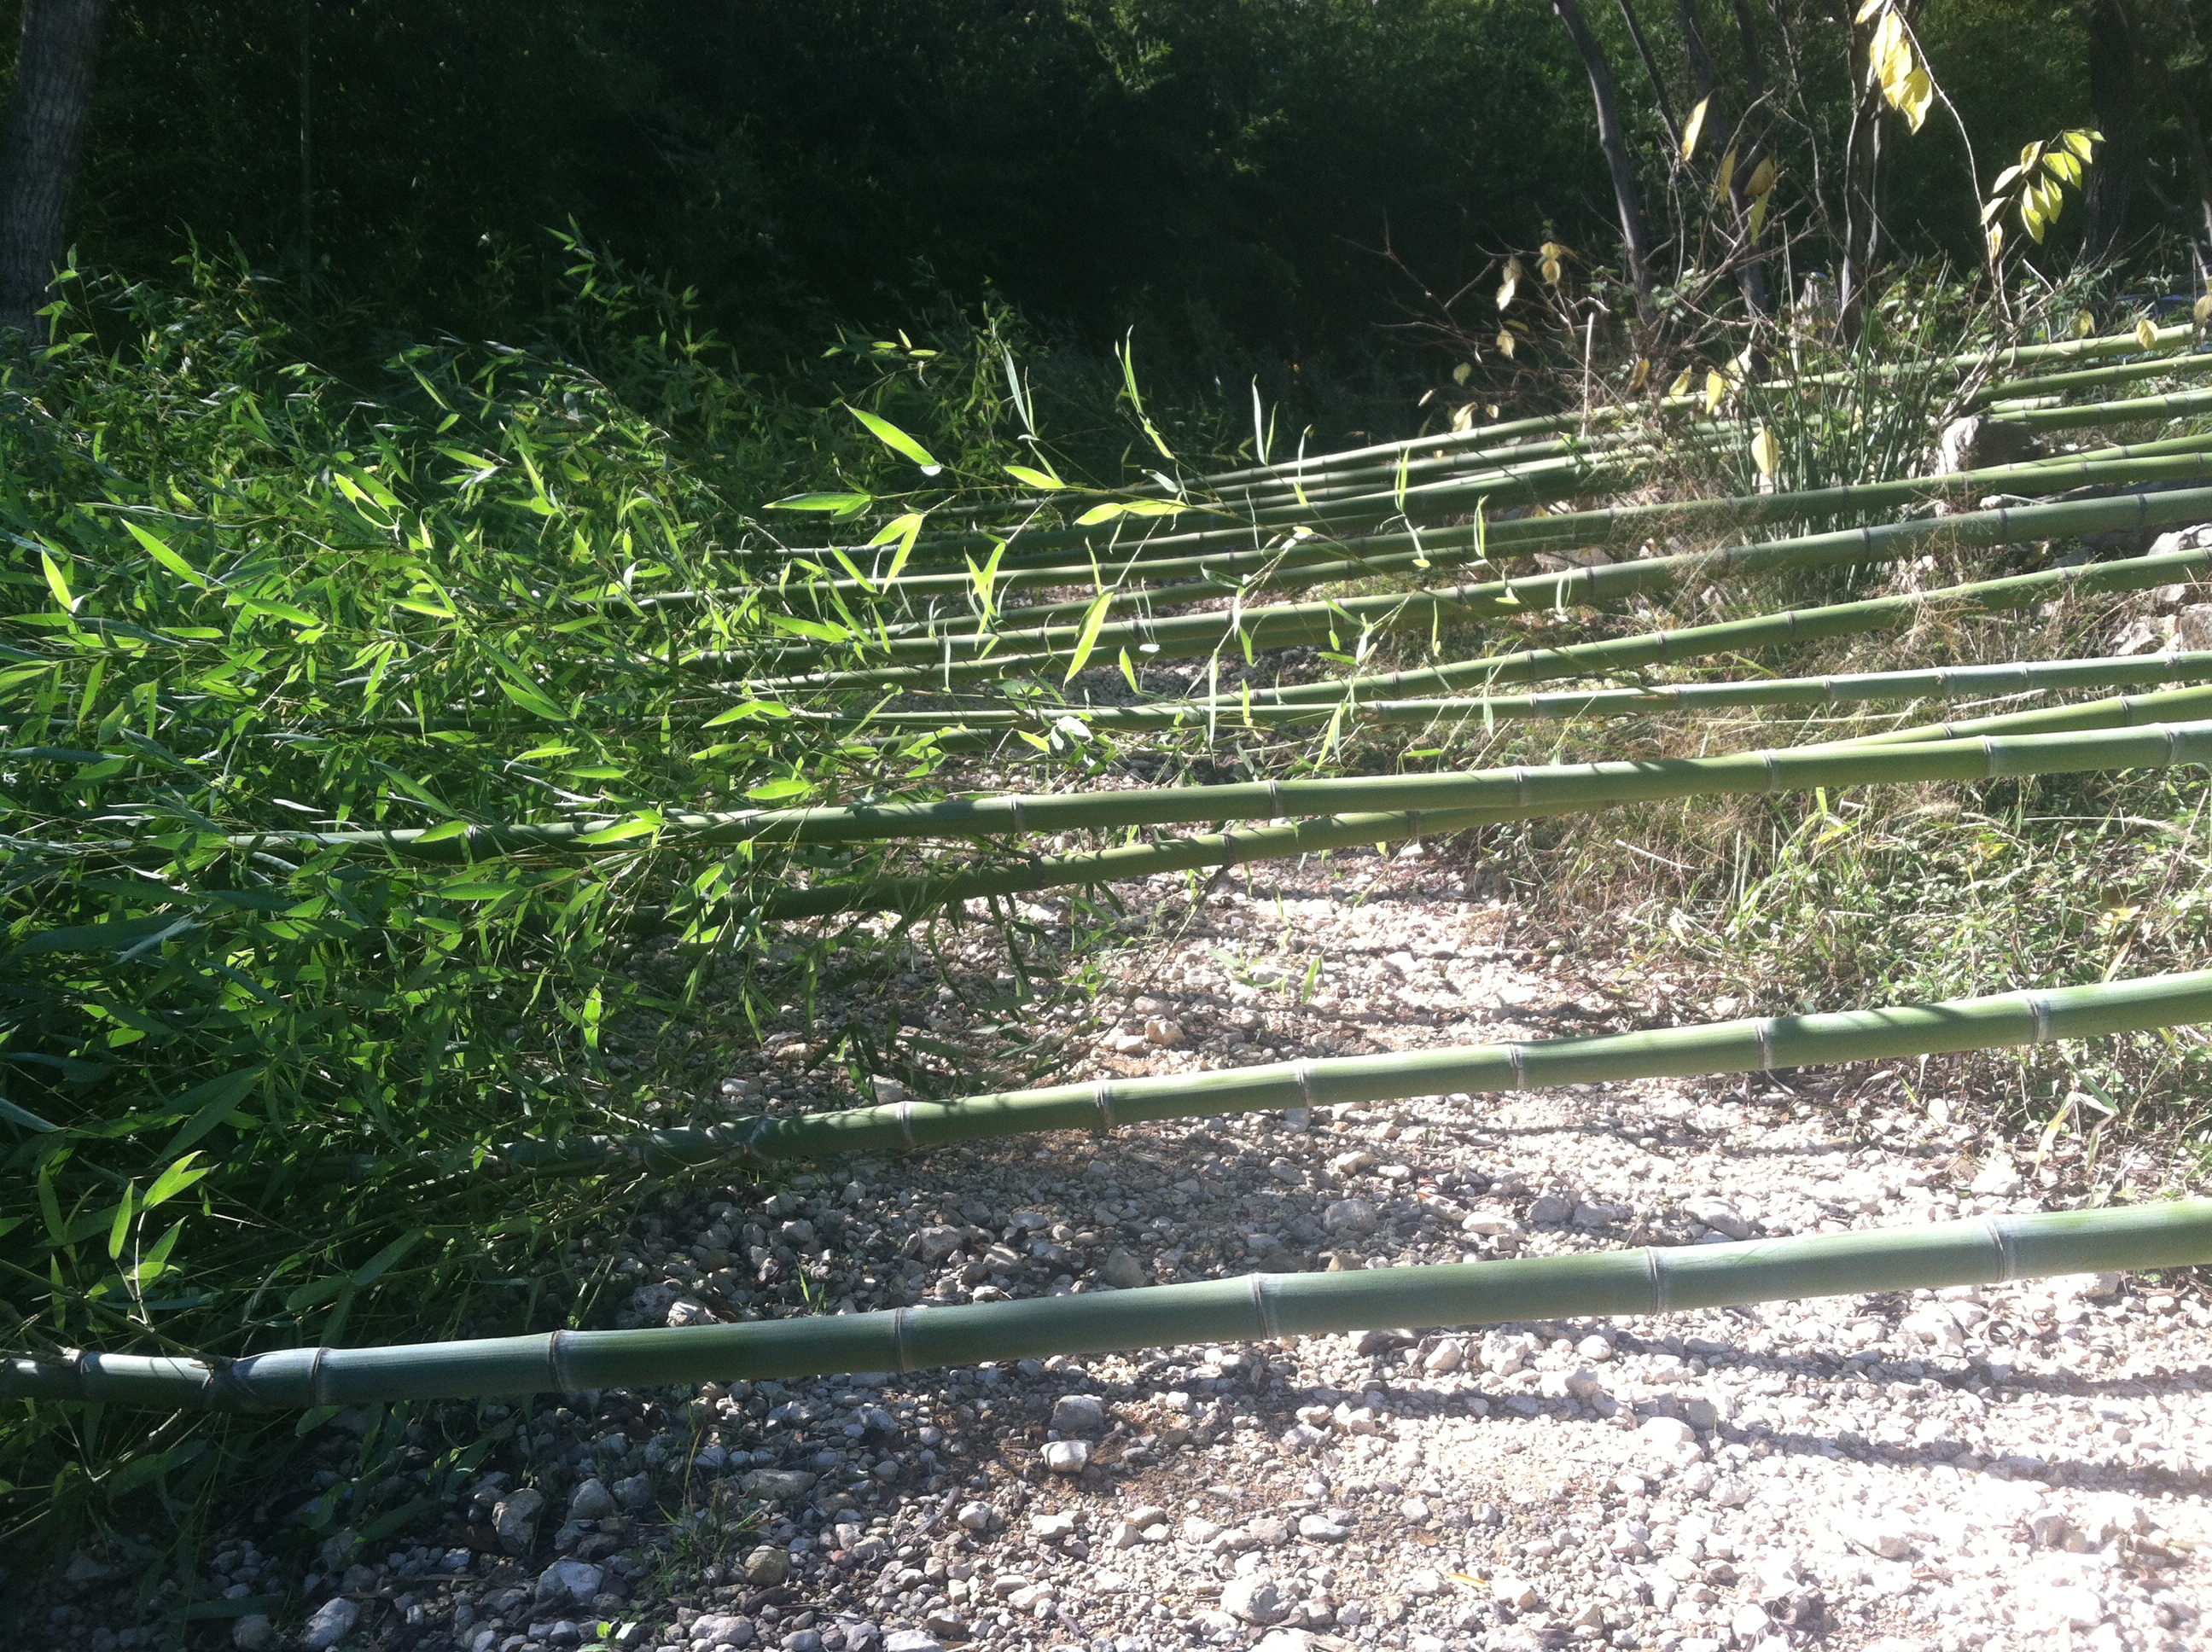 Harvesting bamboo locally to build sustainable fencing for livestock.